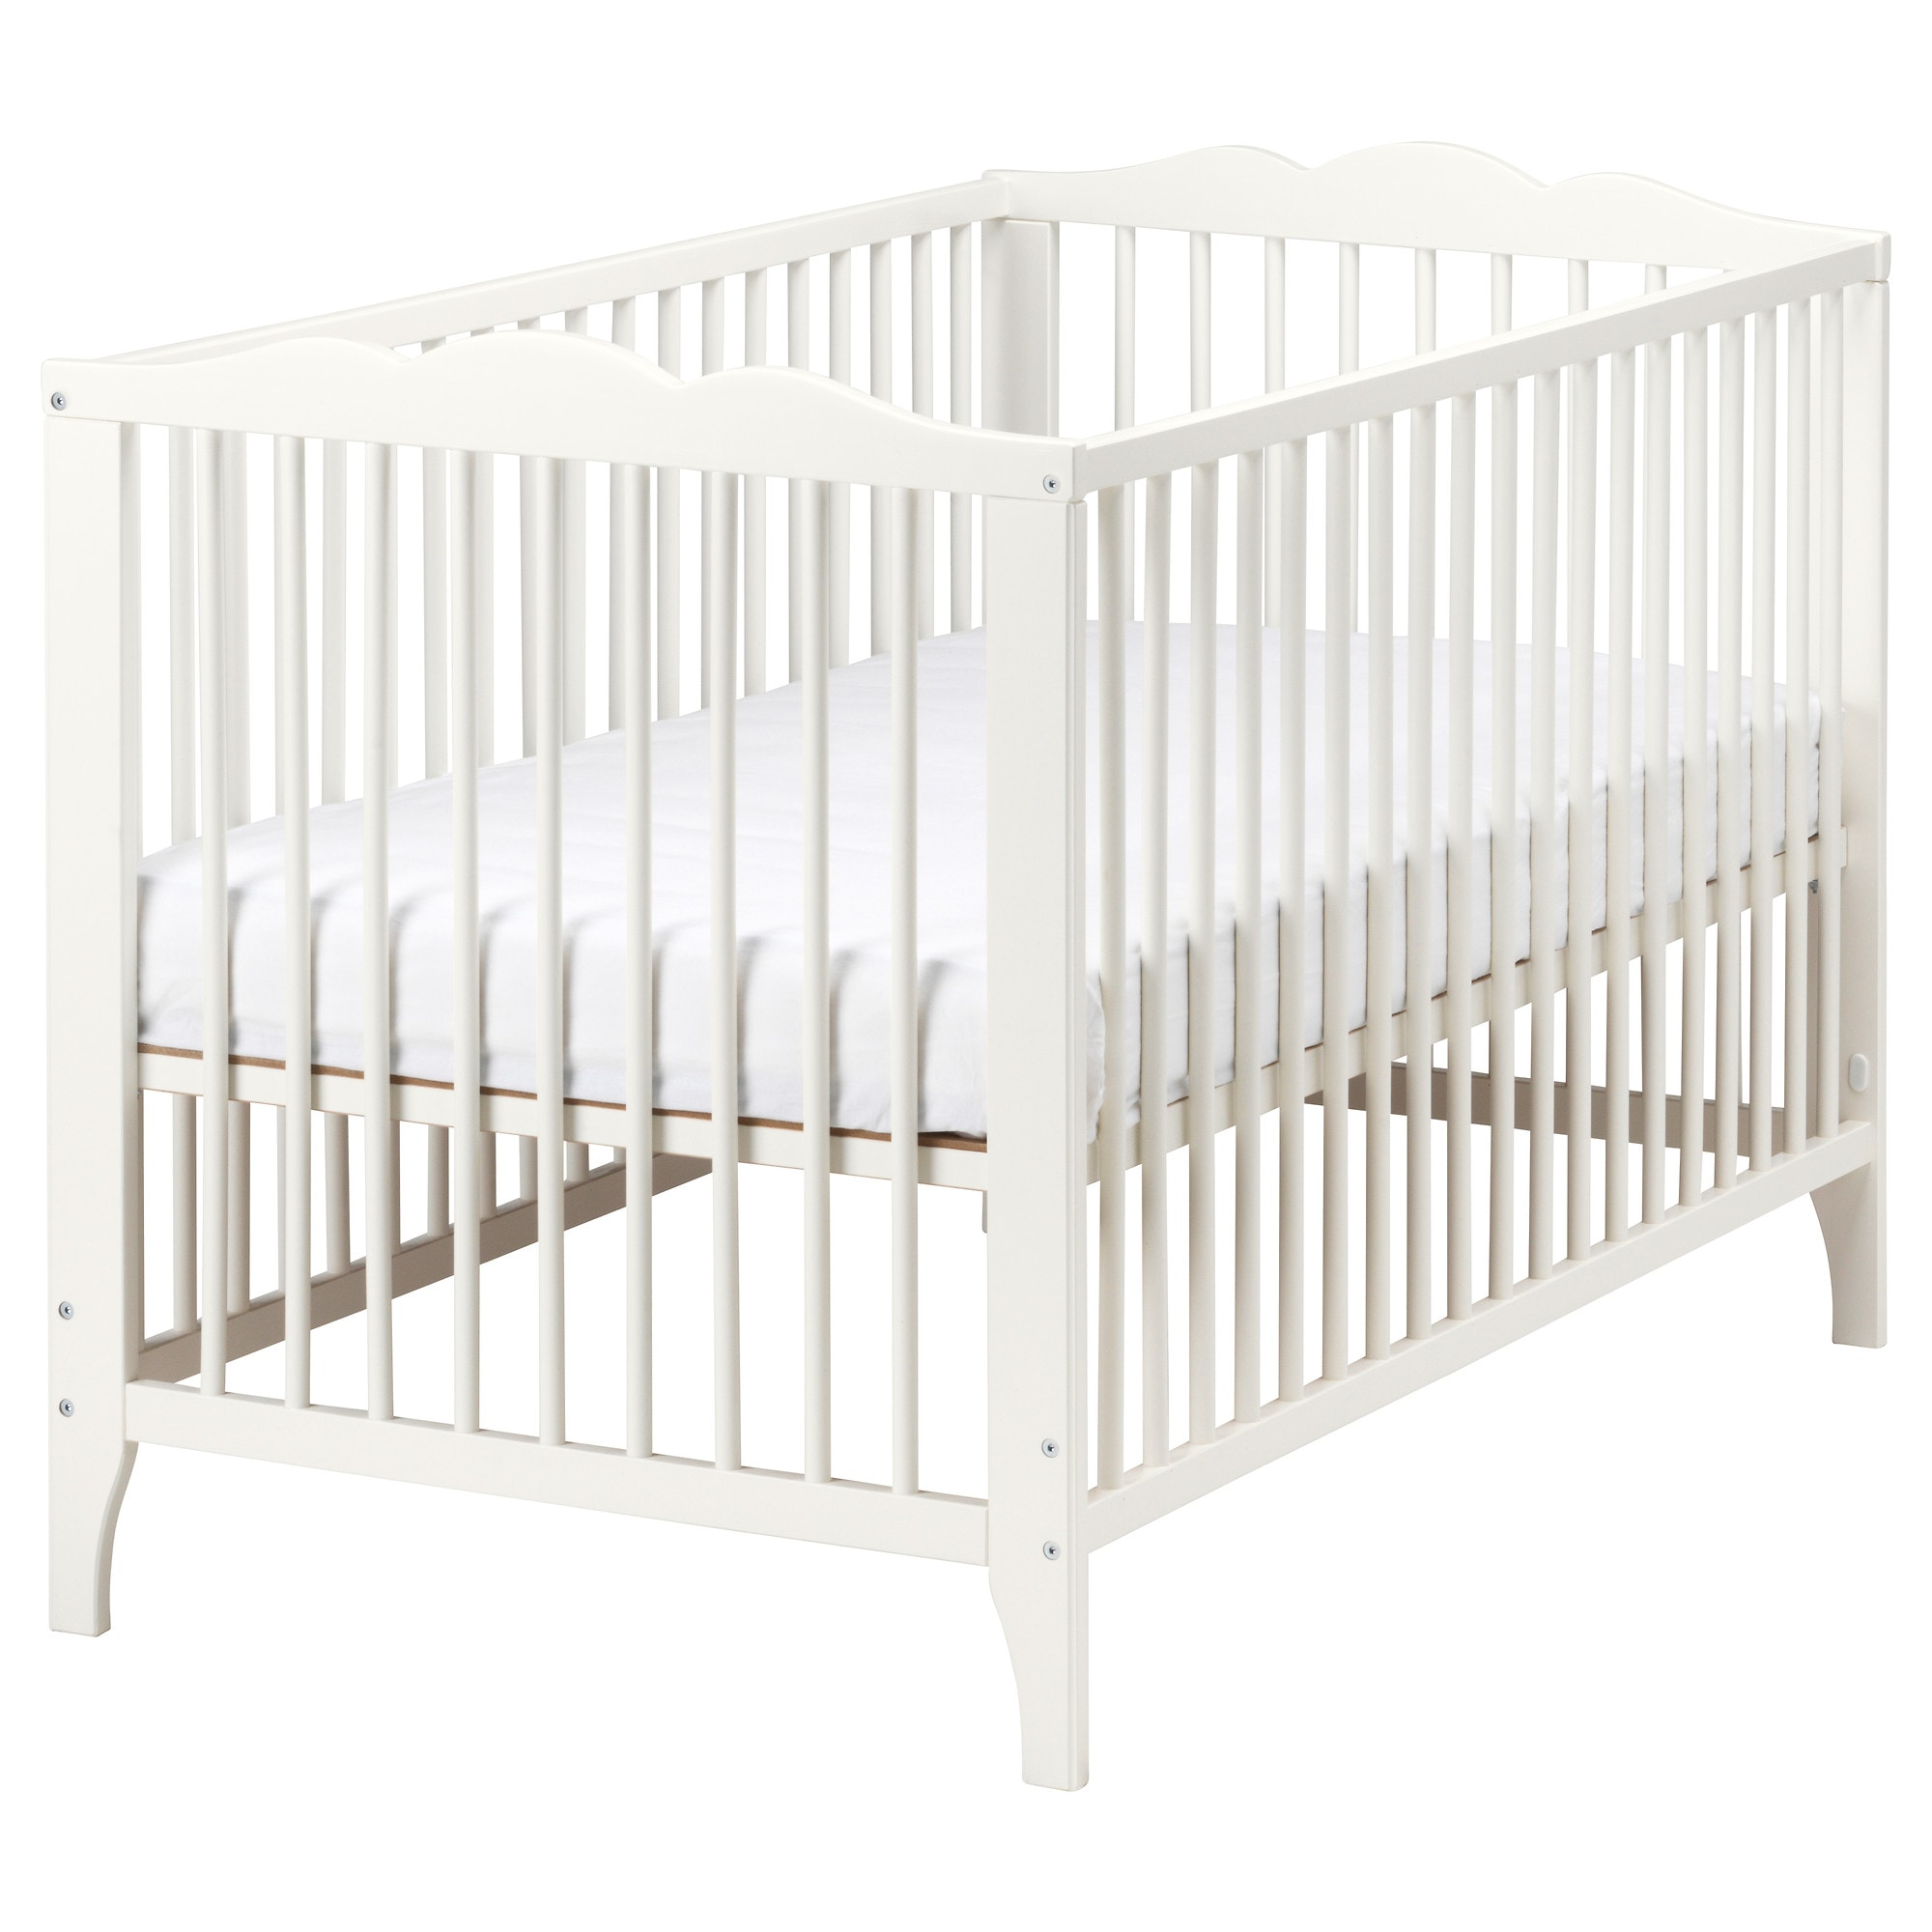 Baby cribs york region - Baby Cribs York Region 33